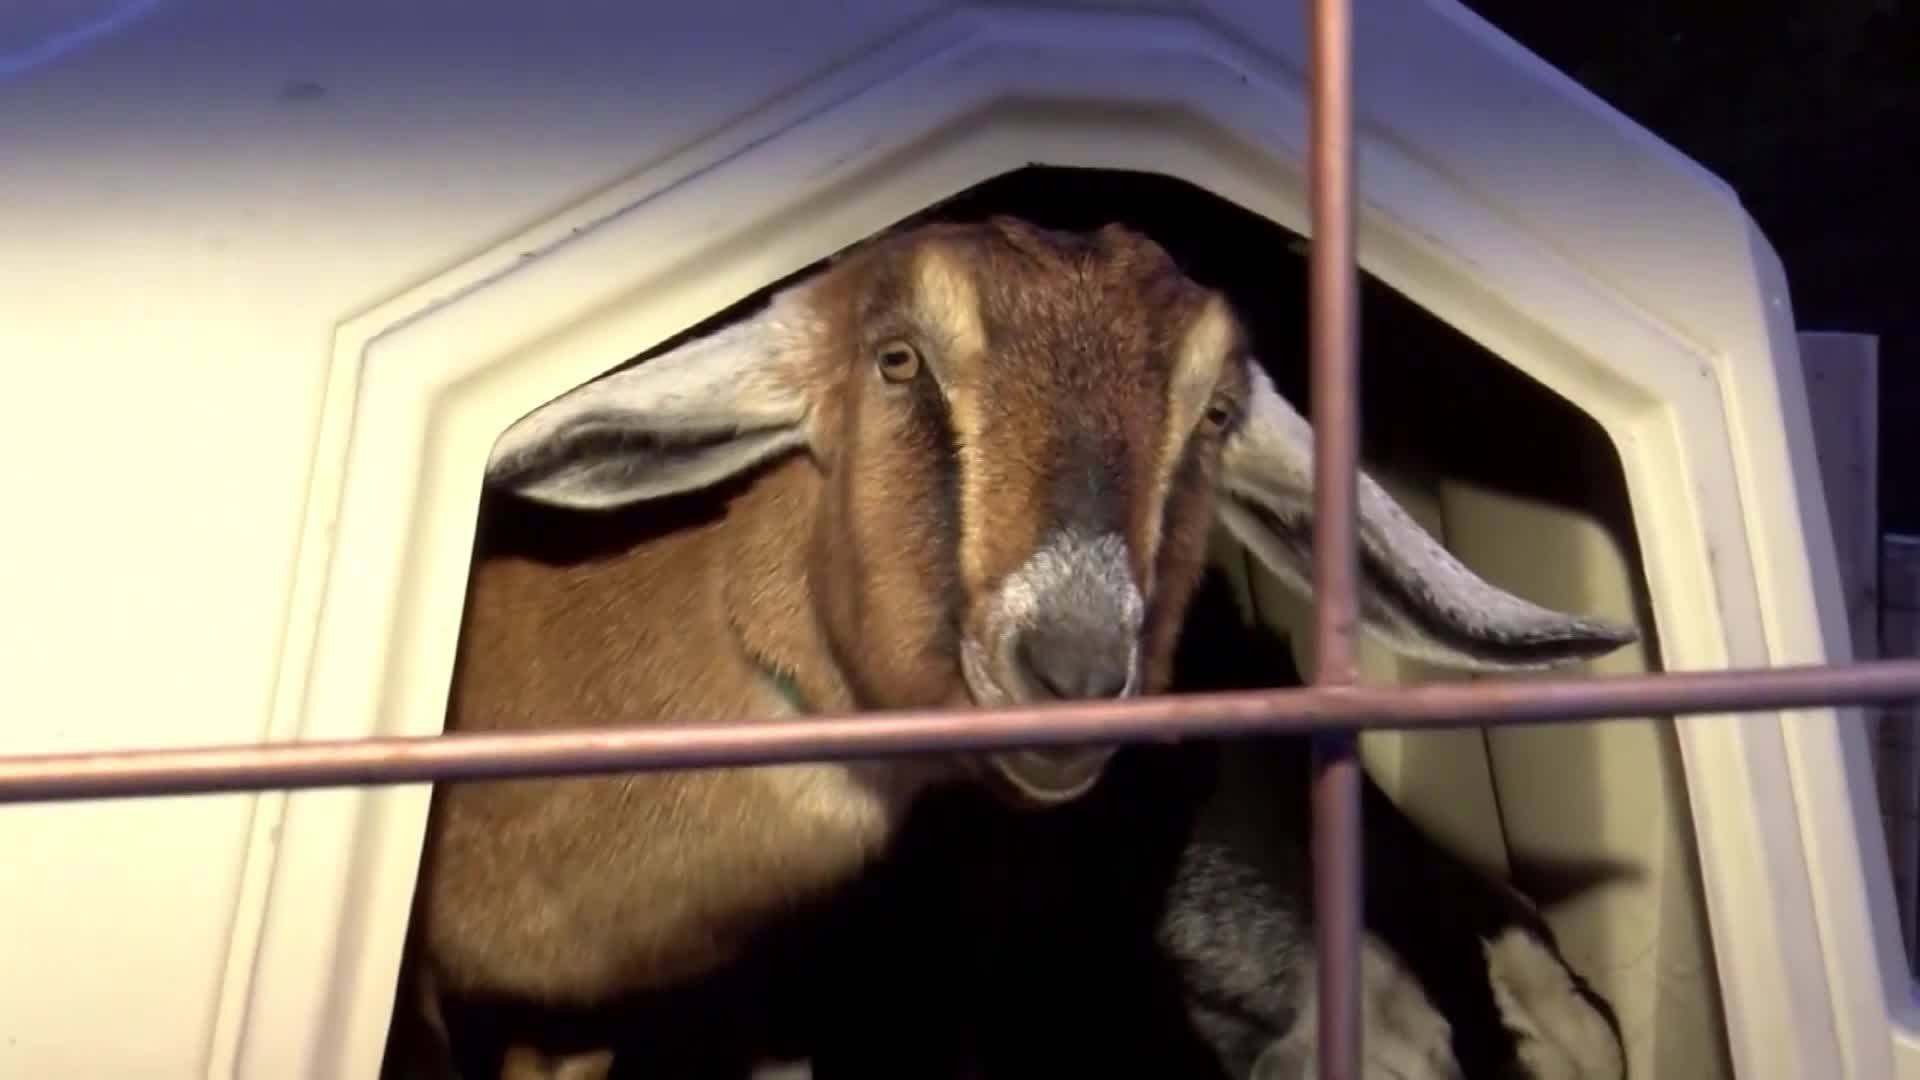 Vermont_Town_Elects_Goat_as_Mayor_7_20190309171149